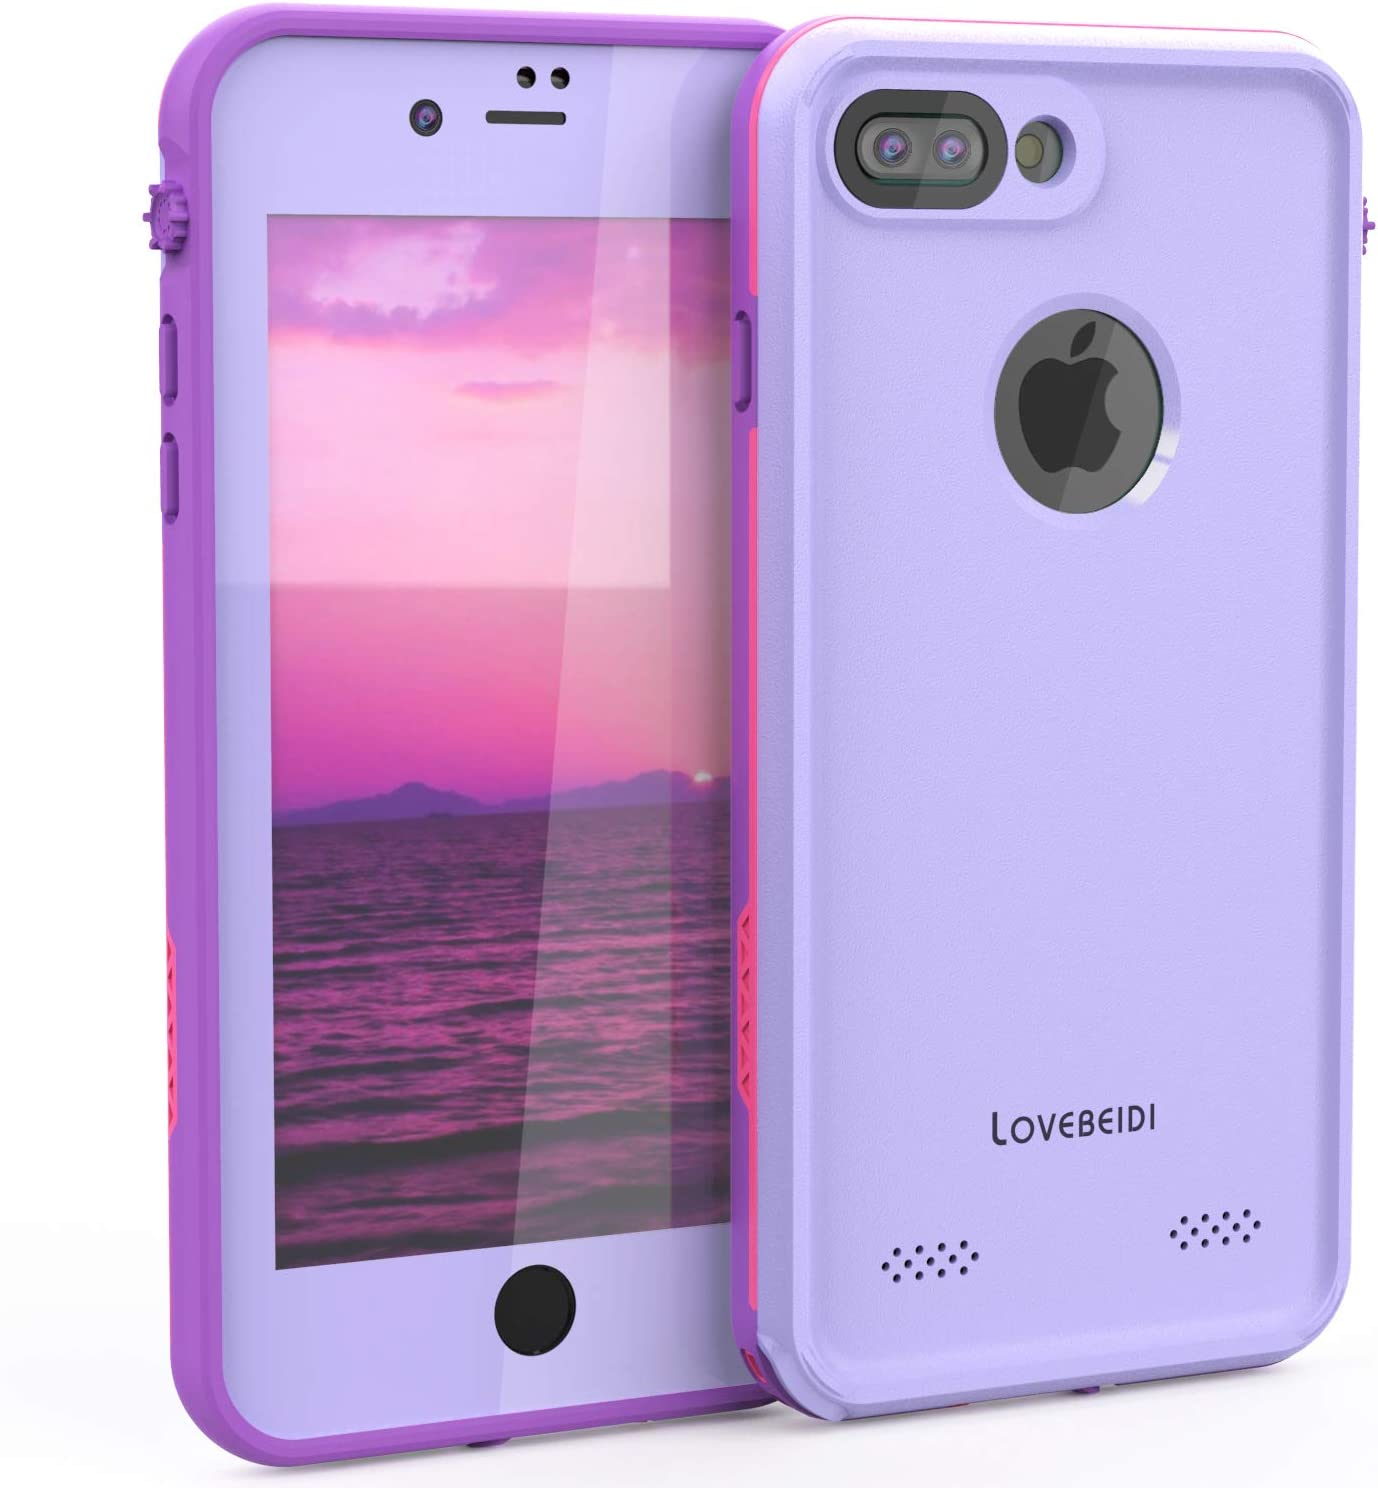 "LOVE BEIDI iPhone 8 7 Plus Waterproof Case Cover Built-in Screen Protector Fully Sealed Life Shockproof Snowproof Underwater Protective Cases for iPhone iPhone 8 7 Plus 5.5"" (Purple/Rose/Orchid)"